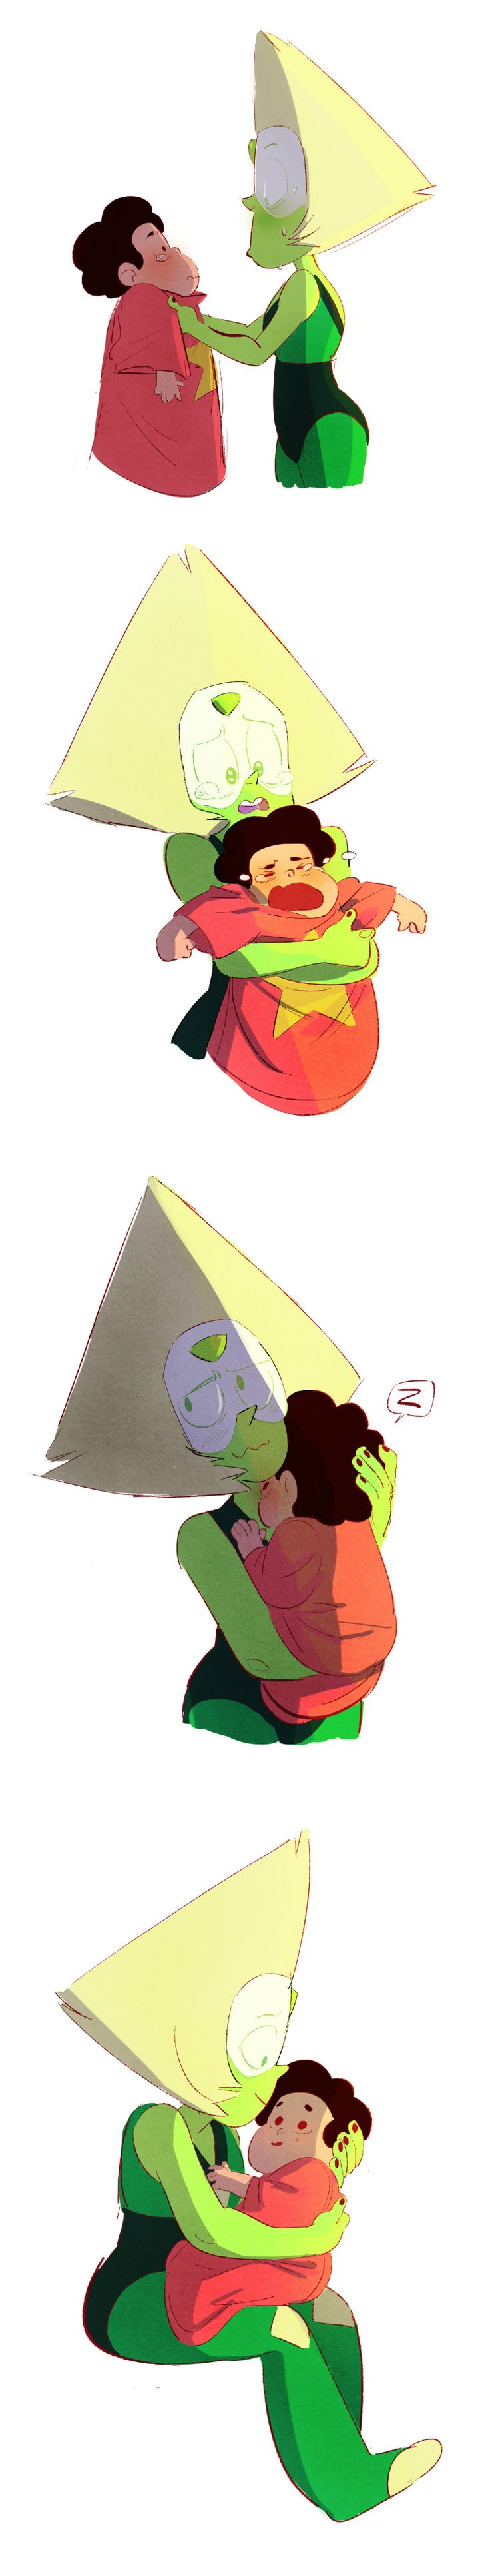 Taking Care of Baby Steven, Steven Universe, Peridot